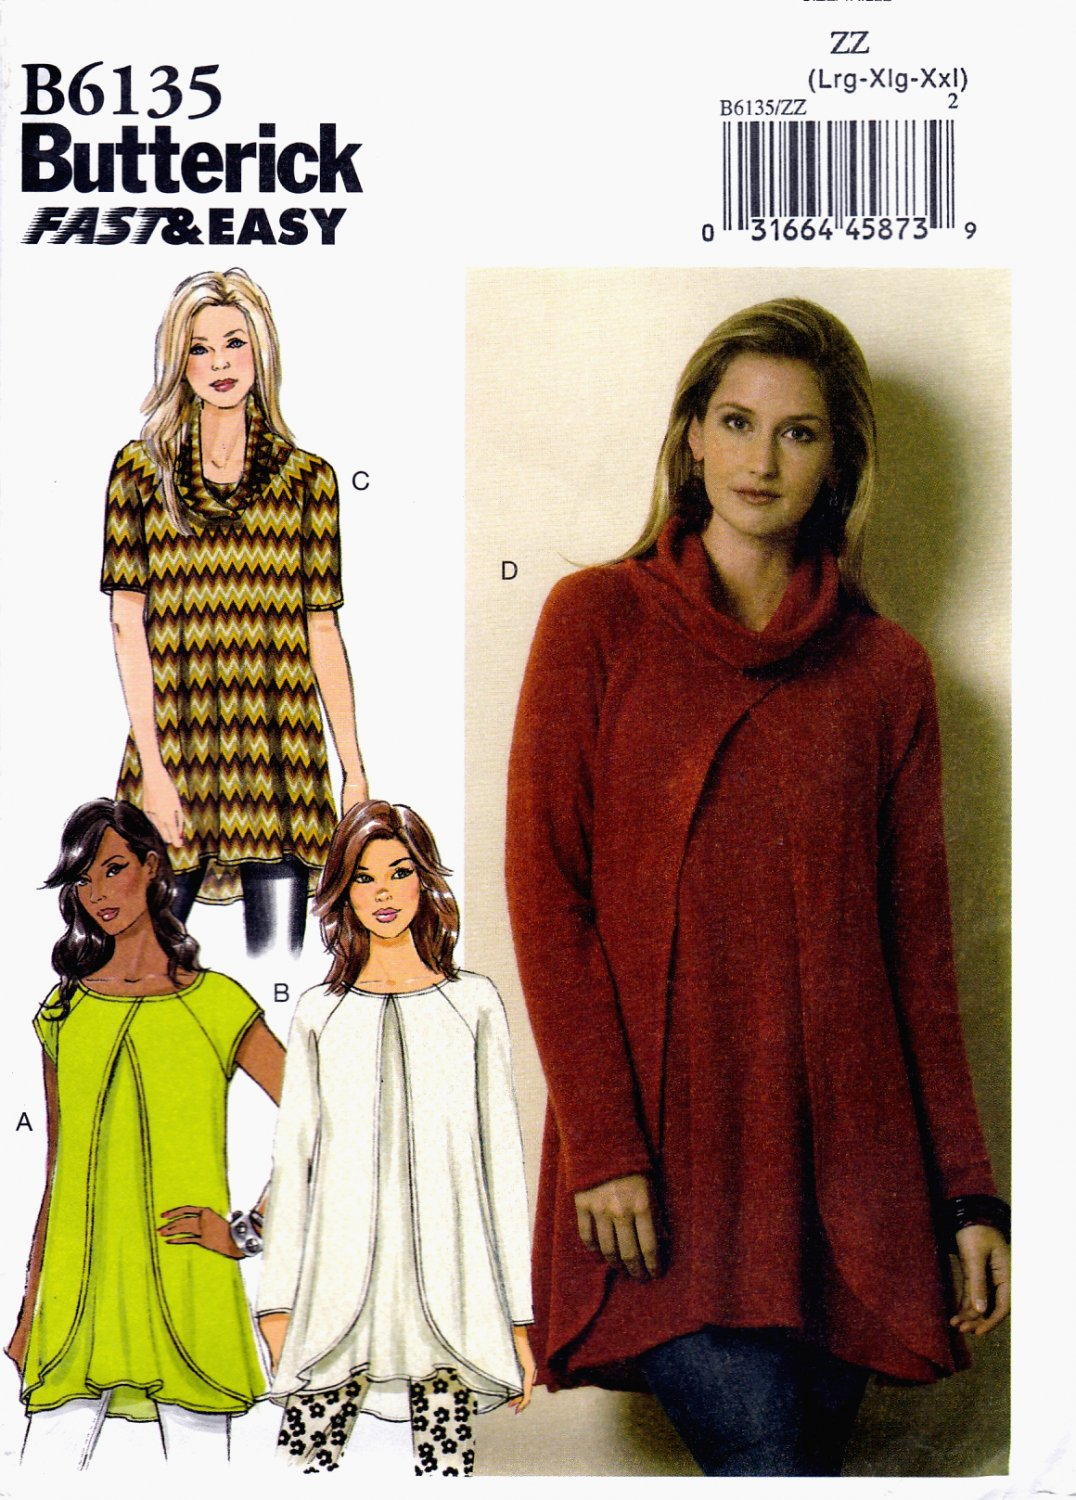 Butterick B6135 Misses Tunics Easy Sew Pullover Sewing Pattern Sizes Lrg-Xlg-XXL